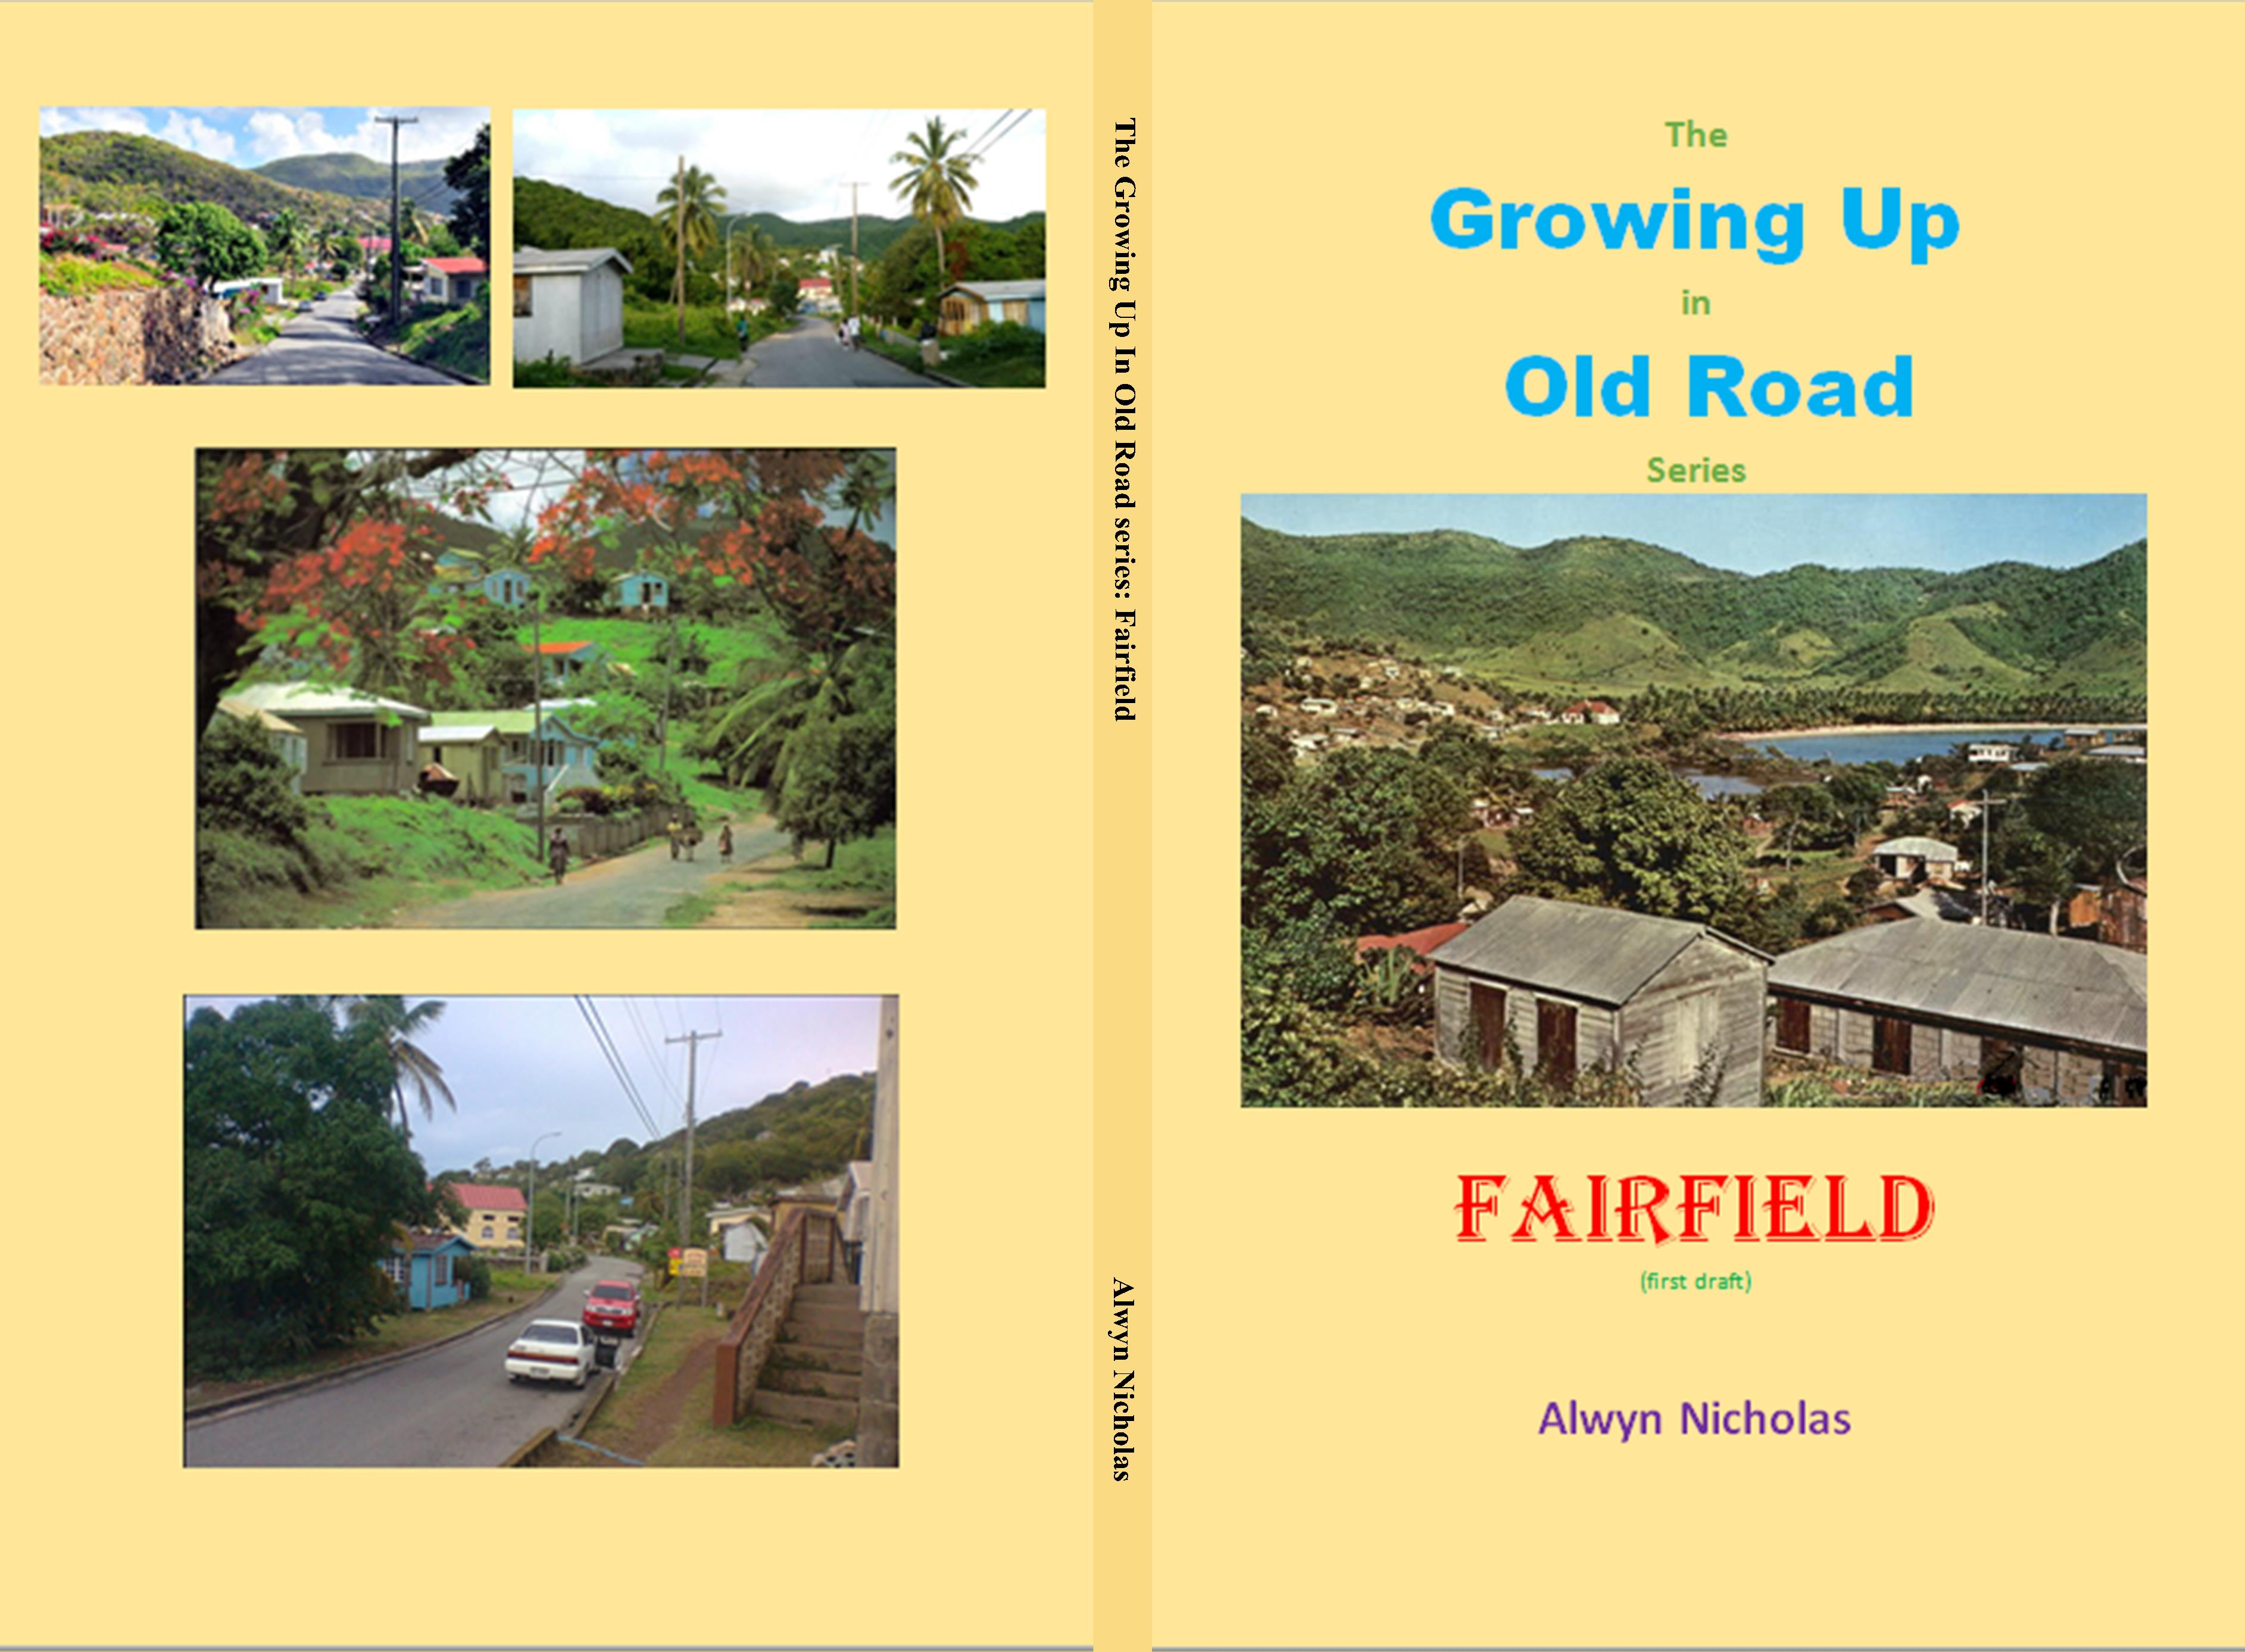 The Growing Up In Old Road series: Fairfield cover image